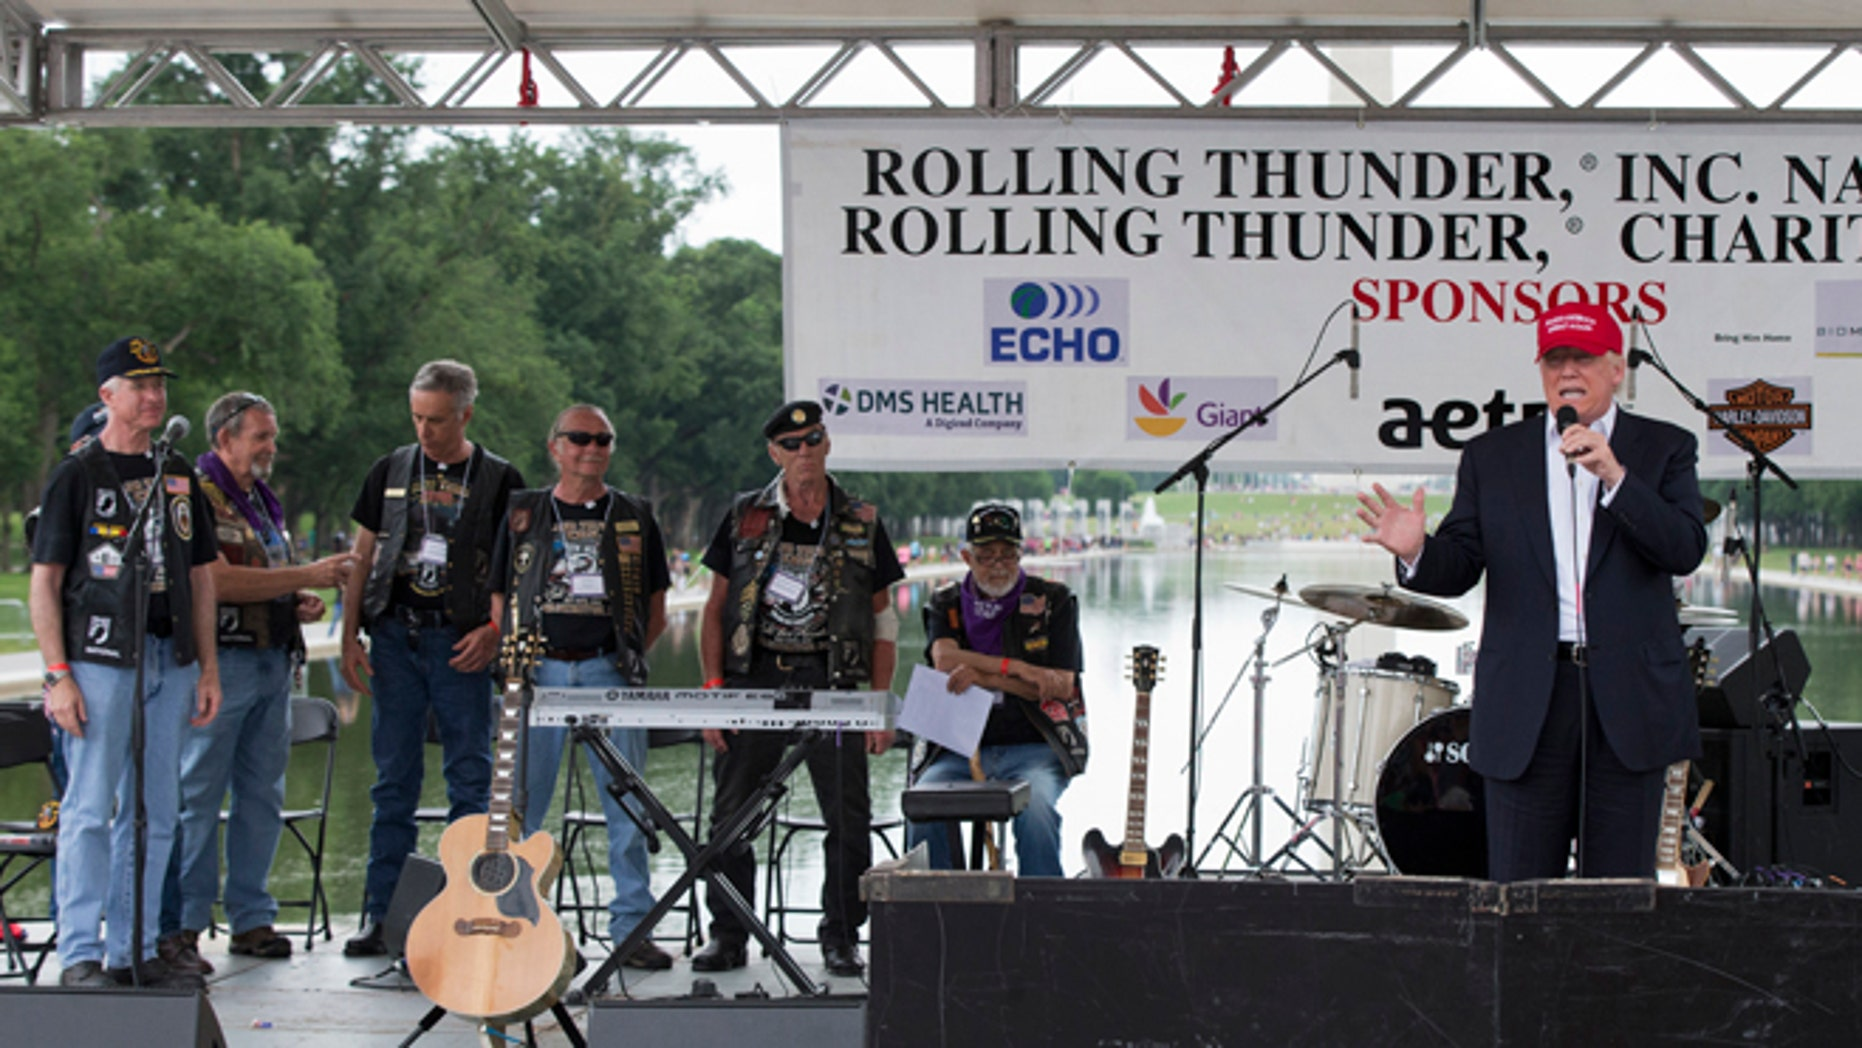 Republican presidential candidate Donald Trump, right, speaks to supporters and bikers at a Rolling Thunder rally at the National Mall in Washington, Sunday, May 29, 2016. (AP Photo/Manuel Balce Ceneta)